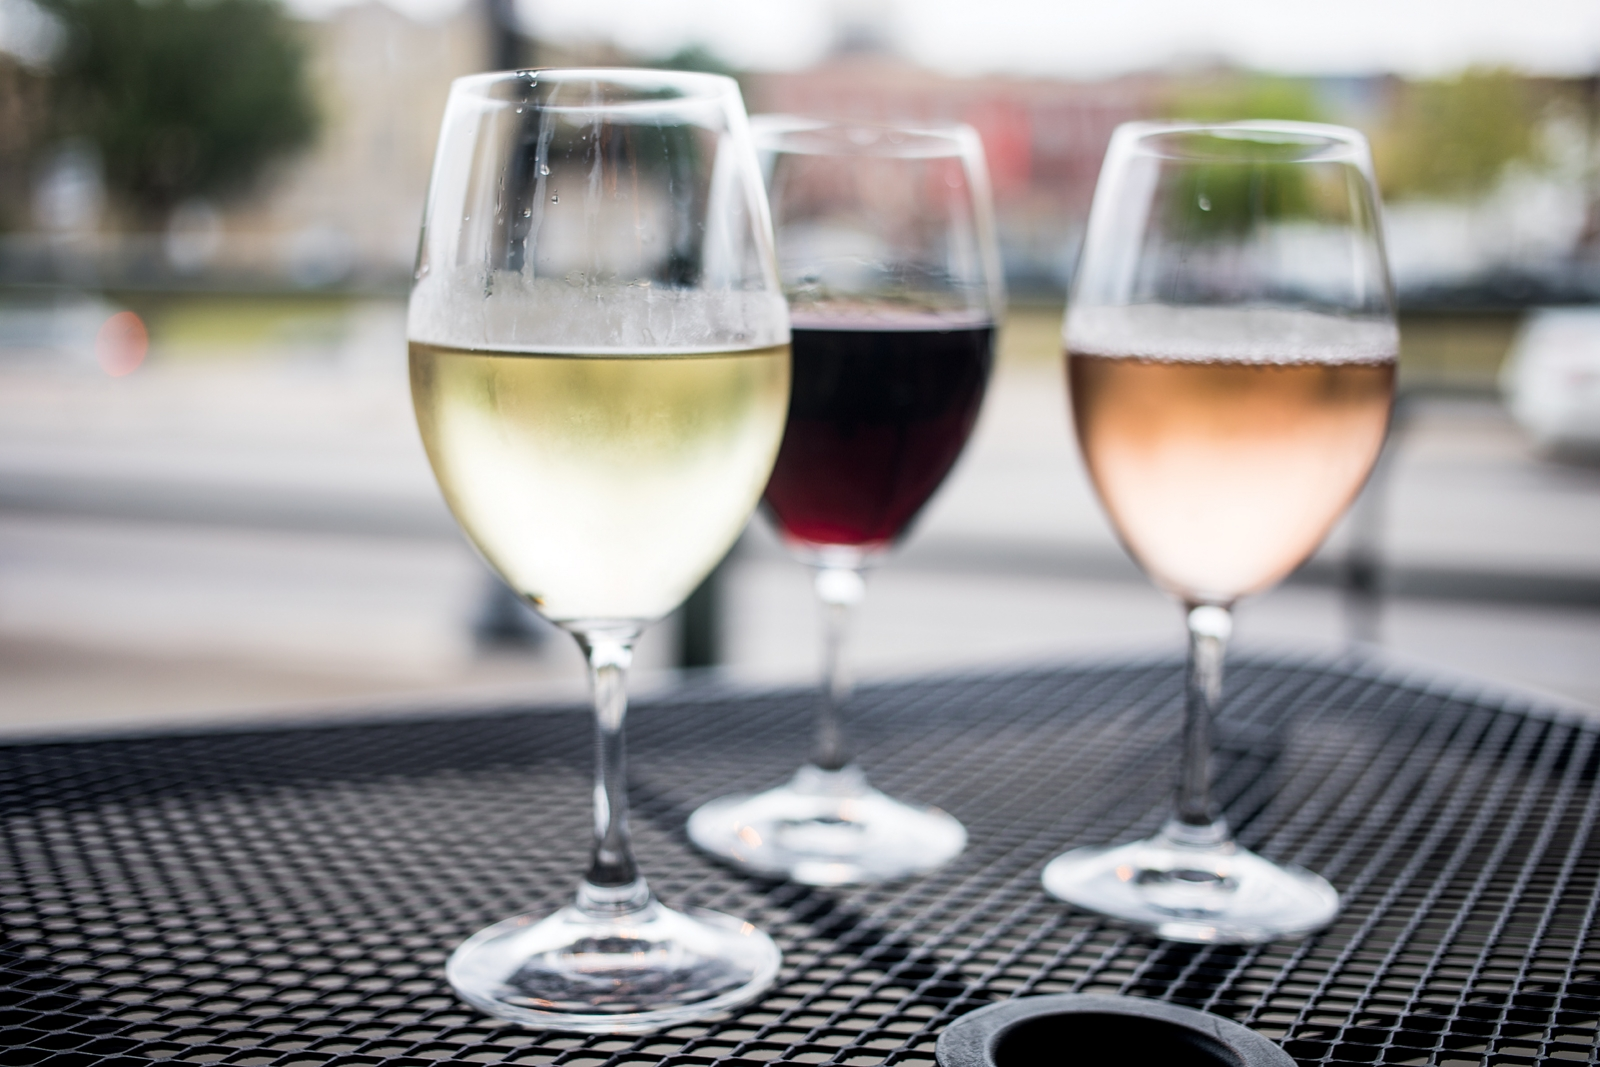 Three glasses of wine sitting on an outdoor table.